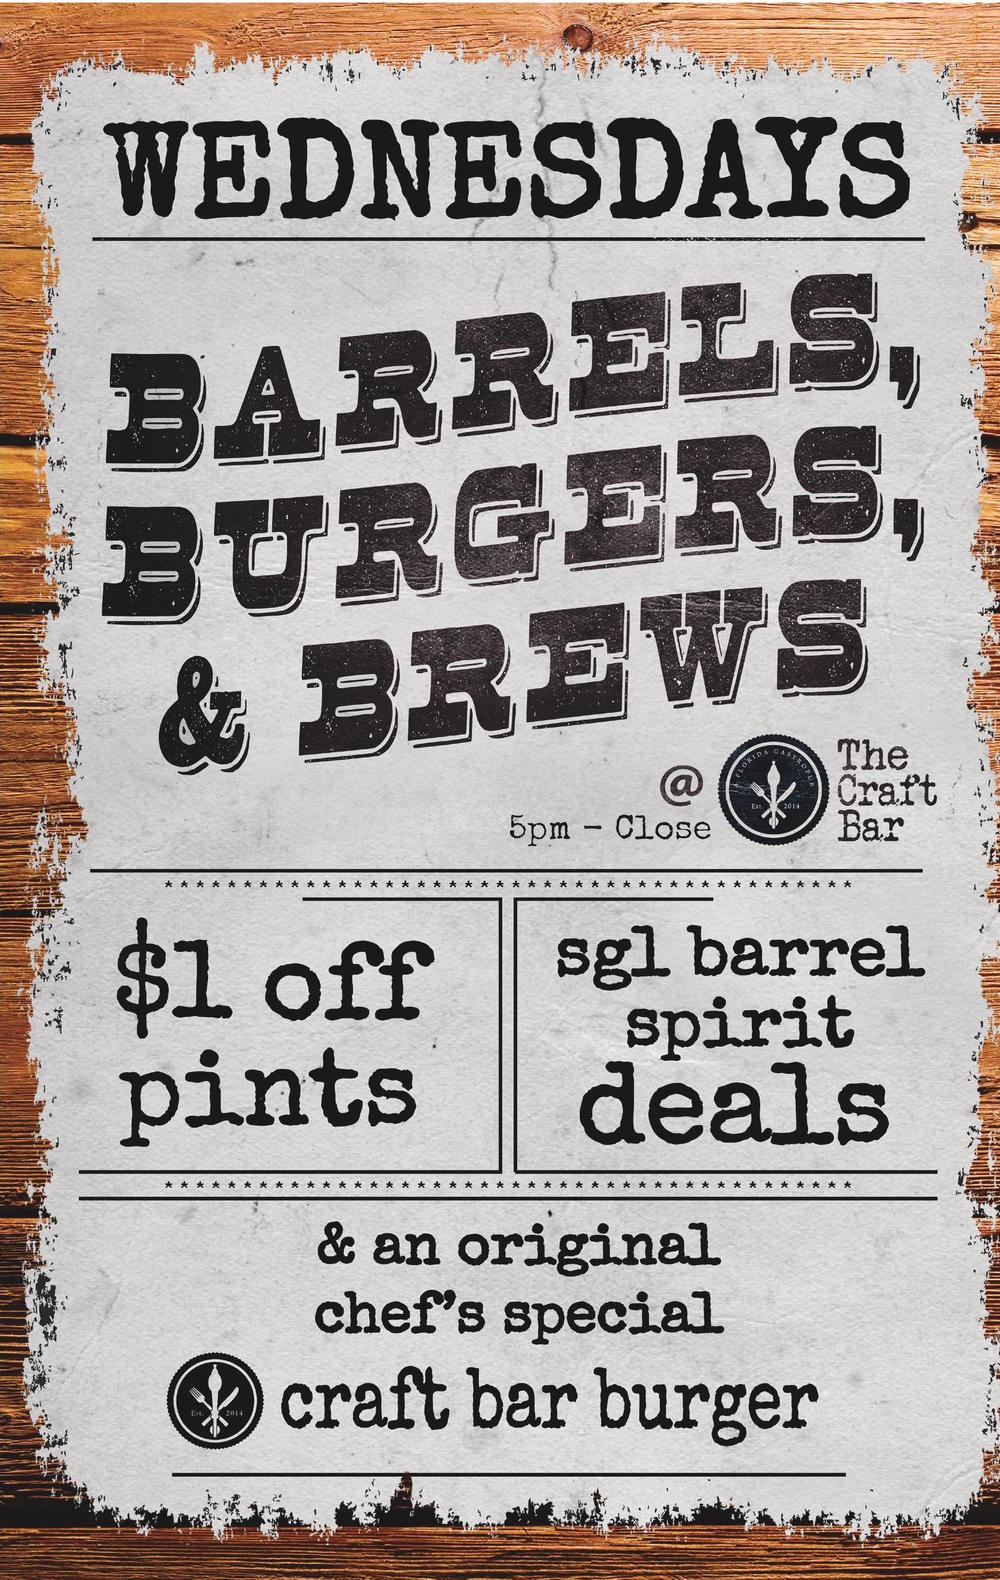 barrels, burgers, brews